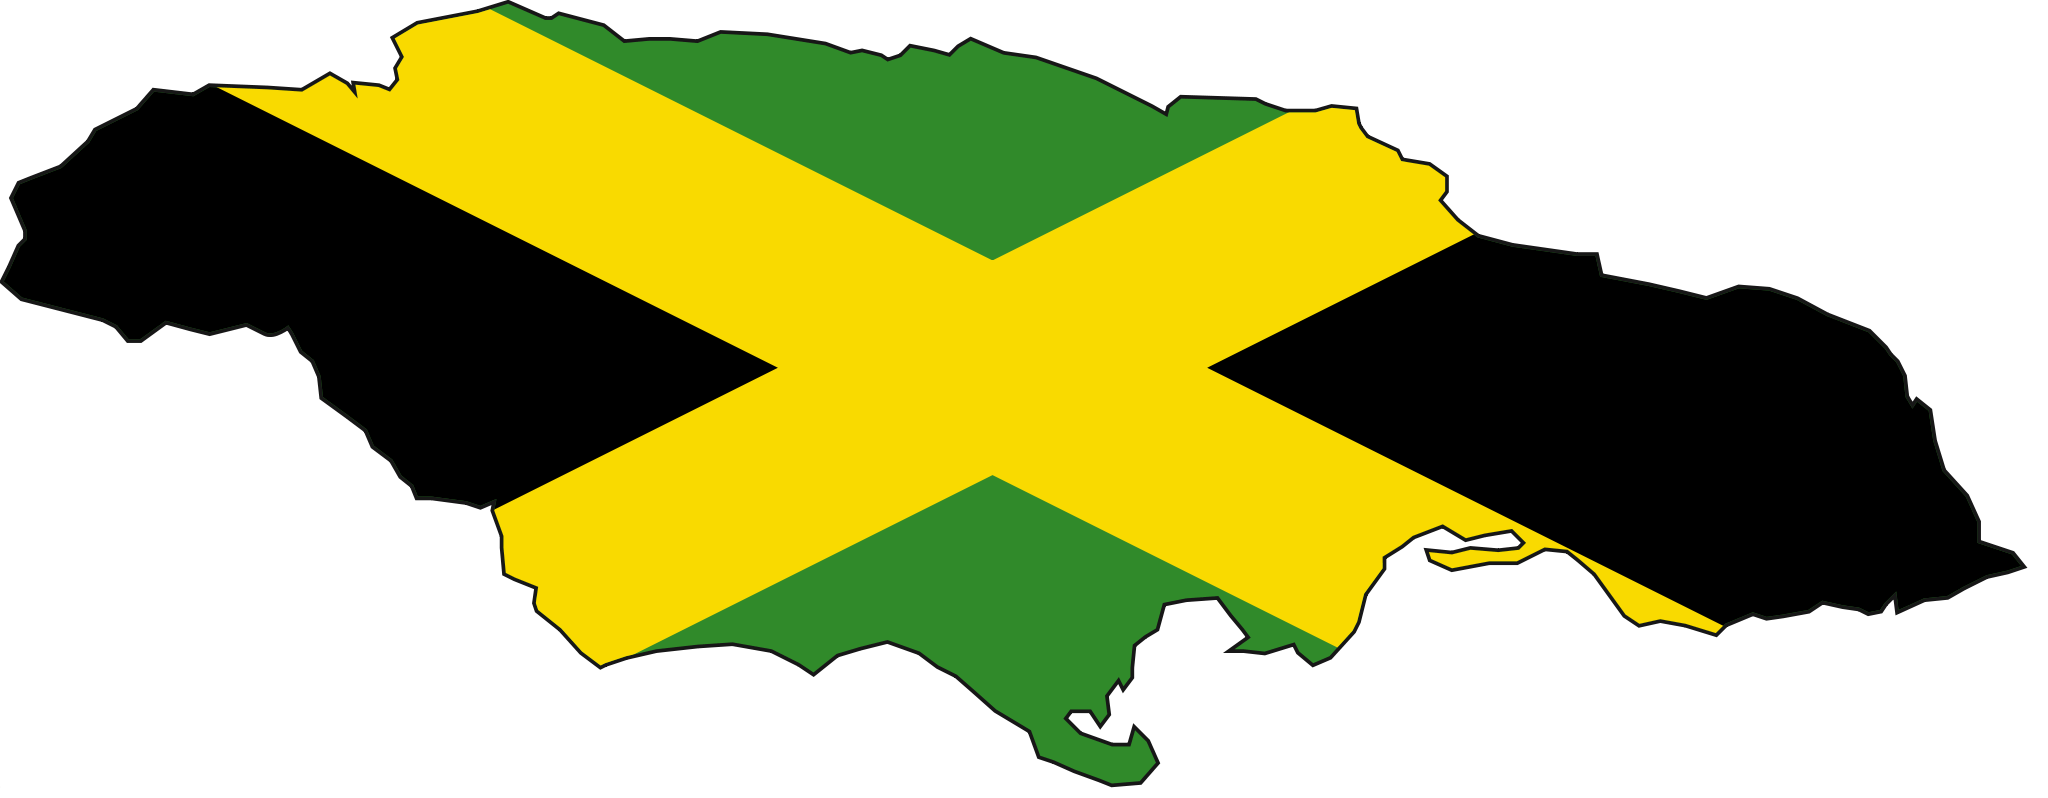 Jamaican drawing clipart. Crowns graphics illustrations free